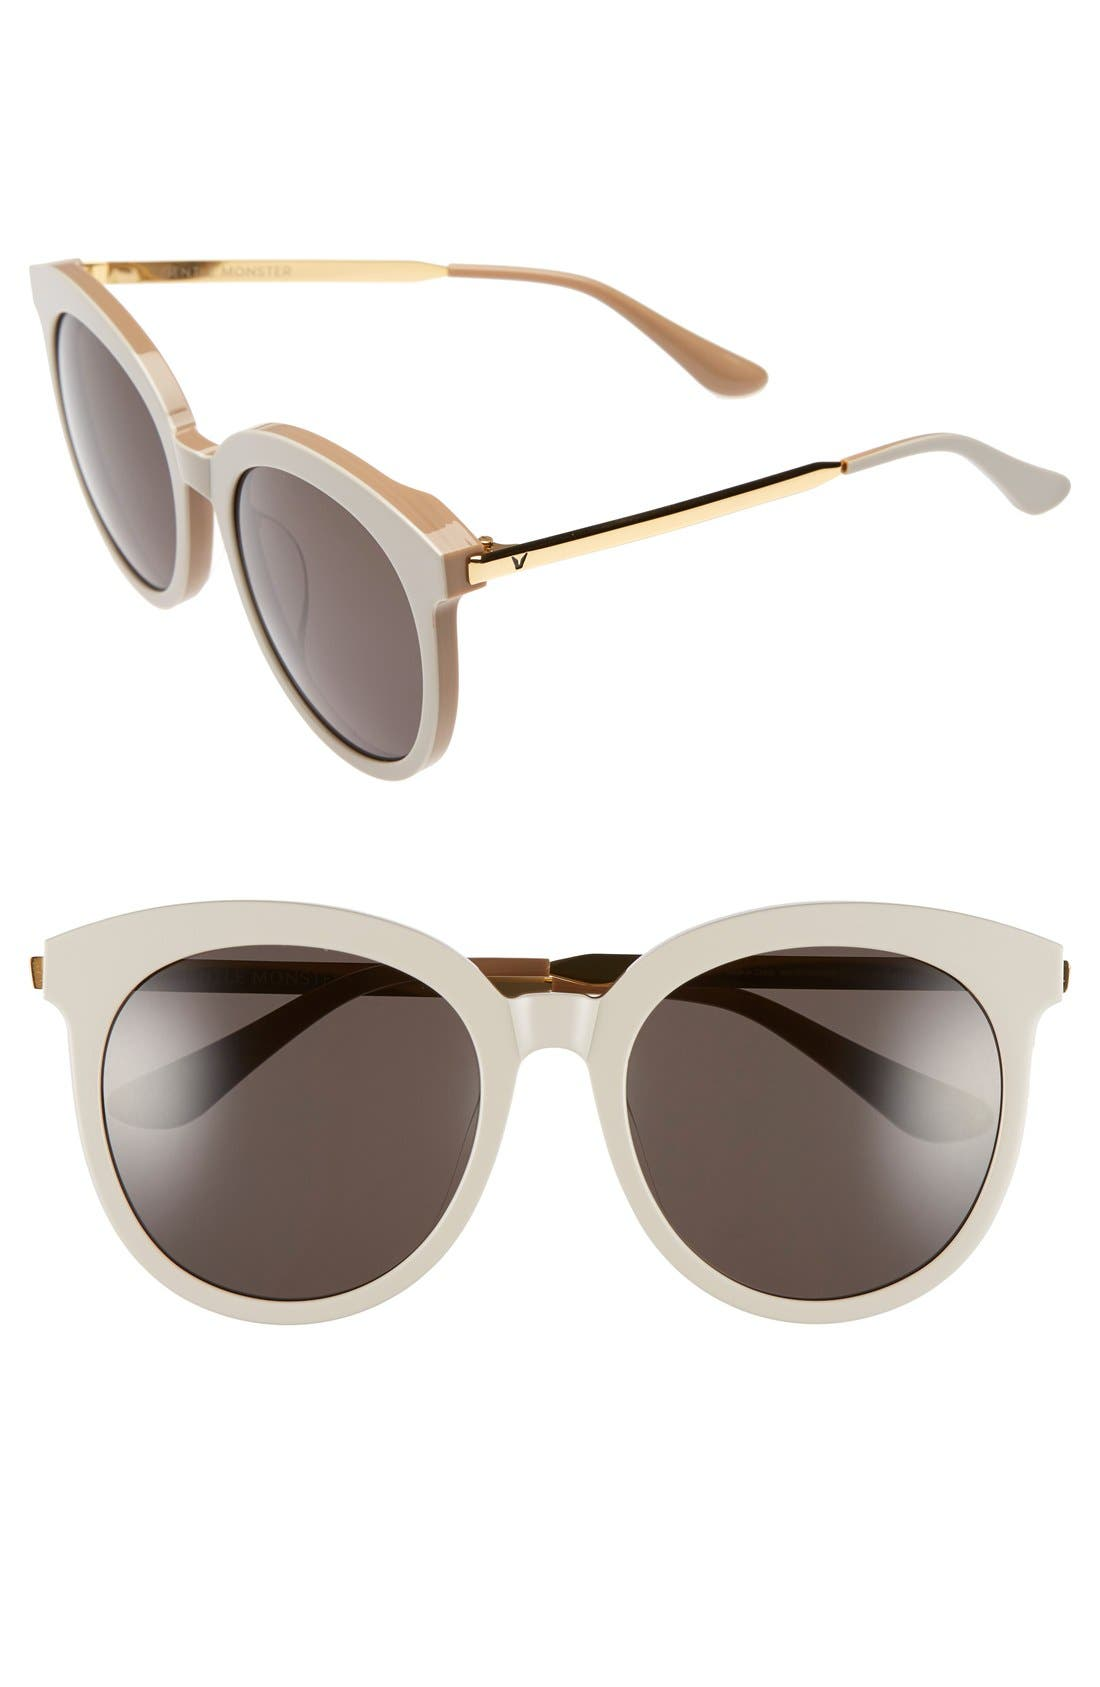 Main Image - Gentle Monster 56mm Round Sunglasses